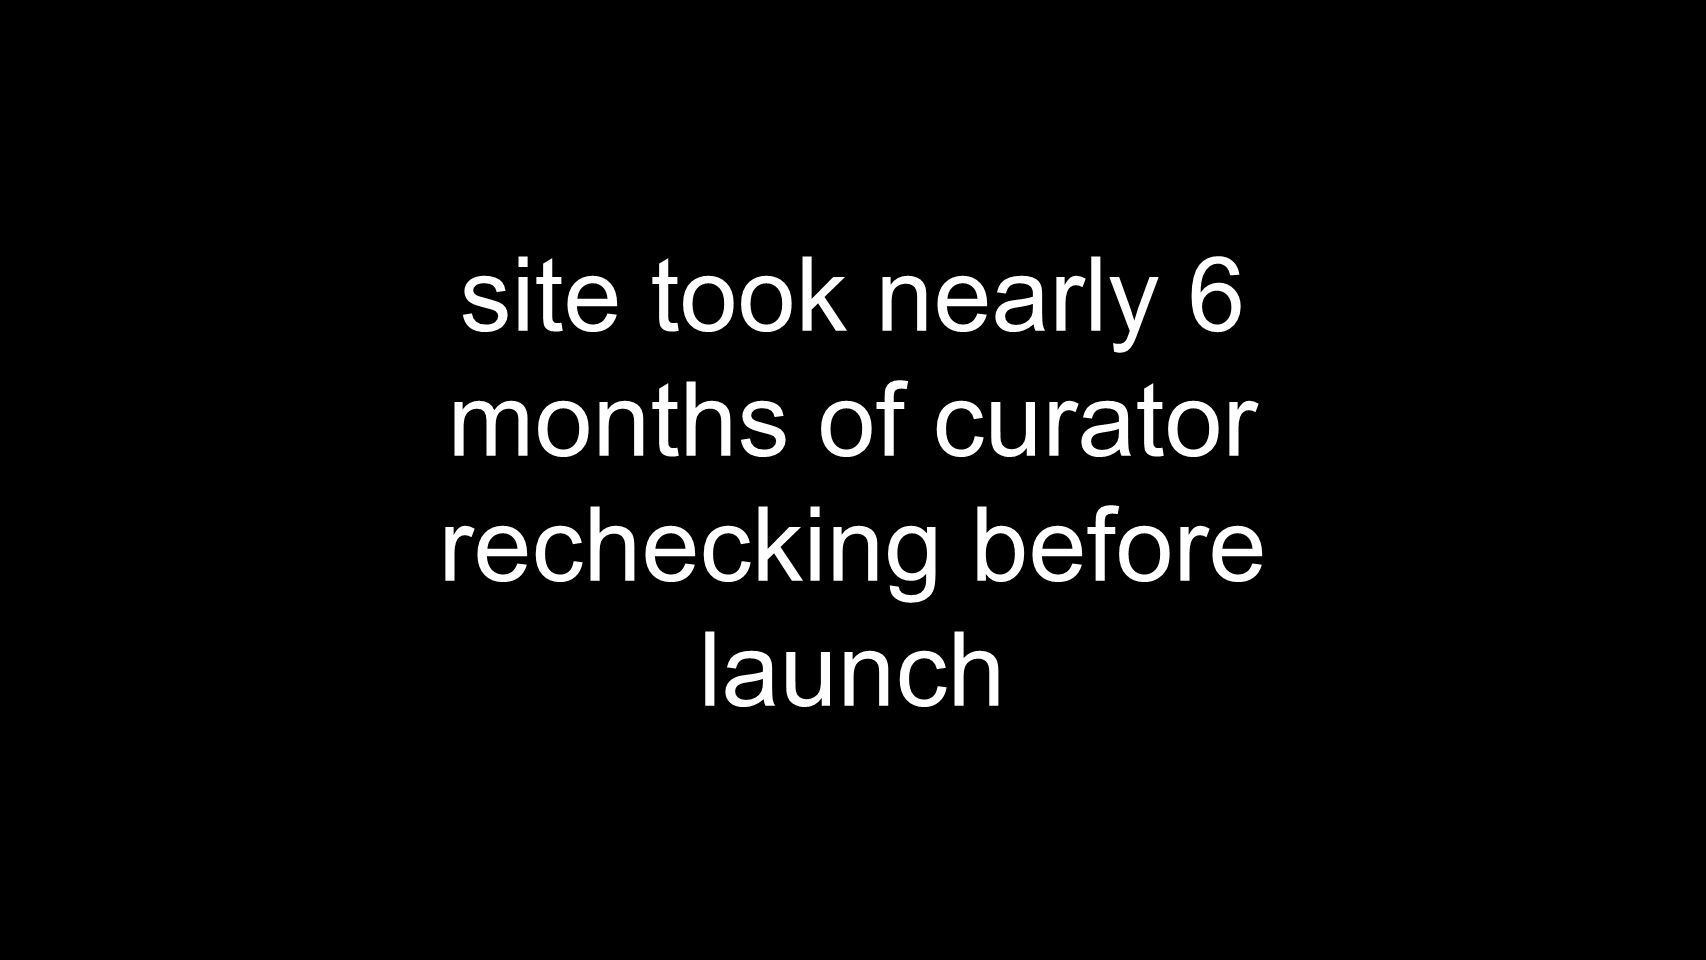 site took nearly 6 months of curator rechecking before launch